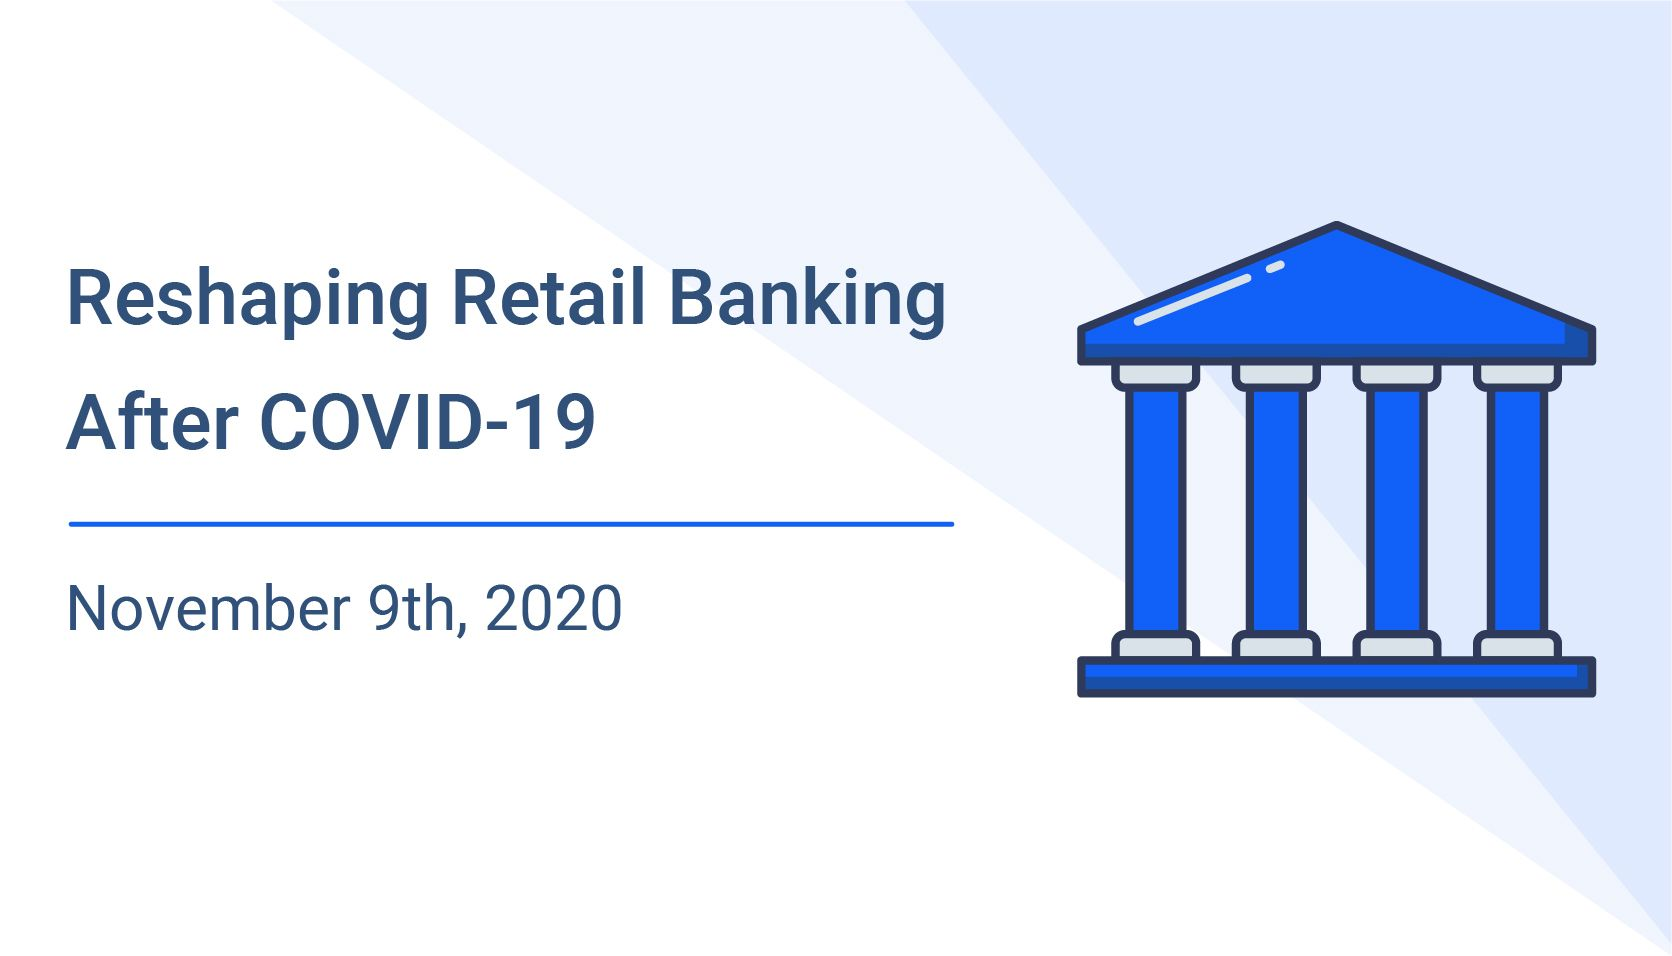 Reshaping Retail Banking After COVID-19